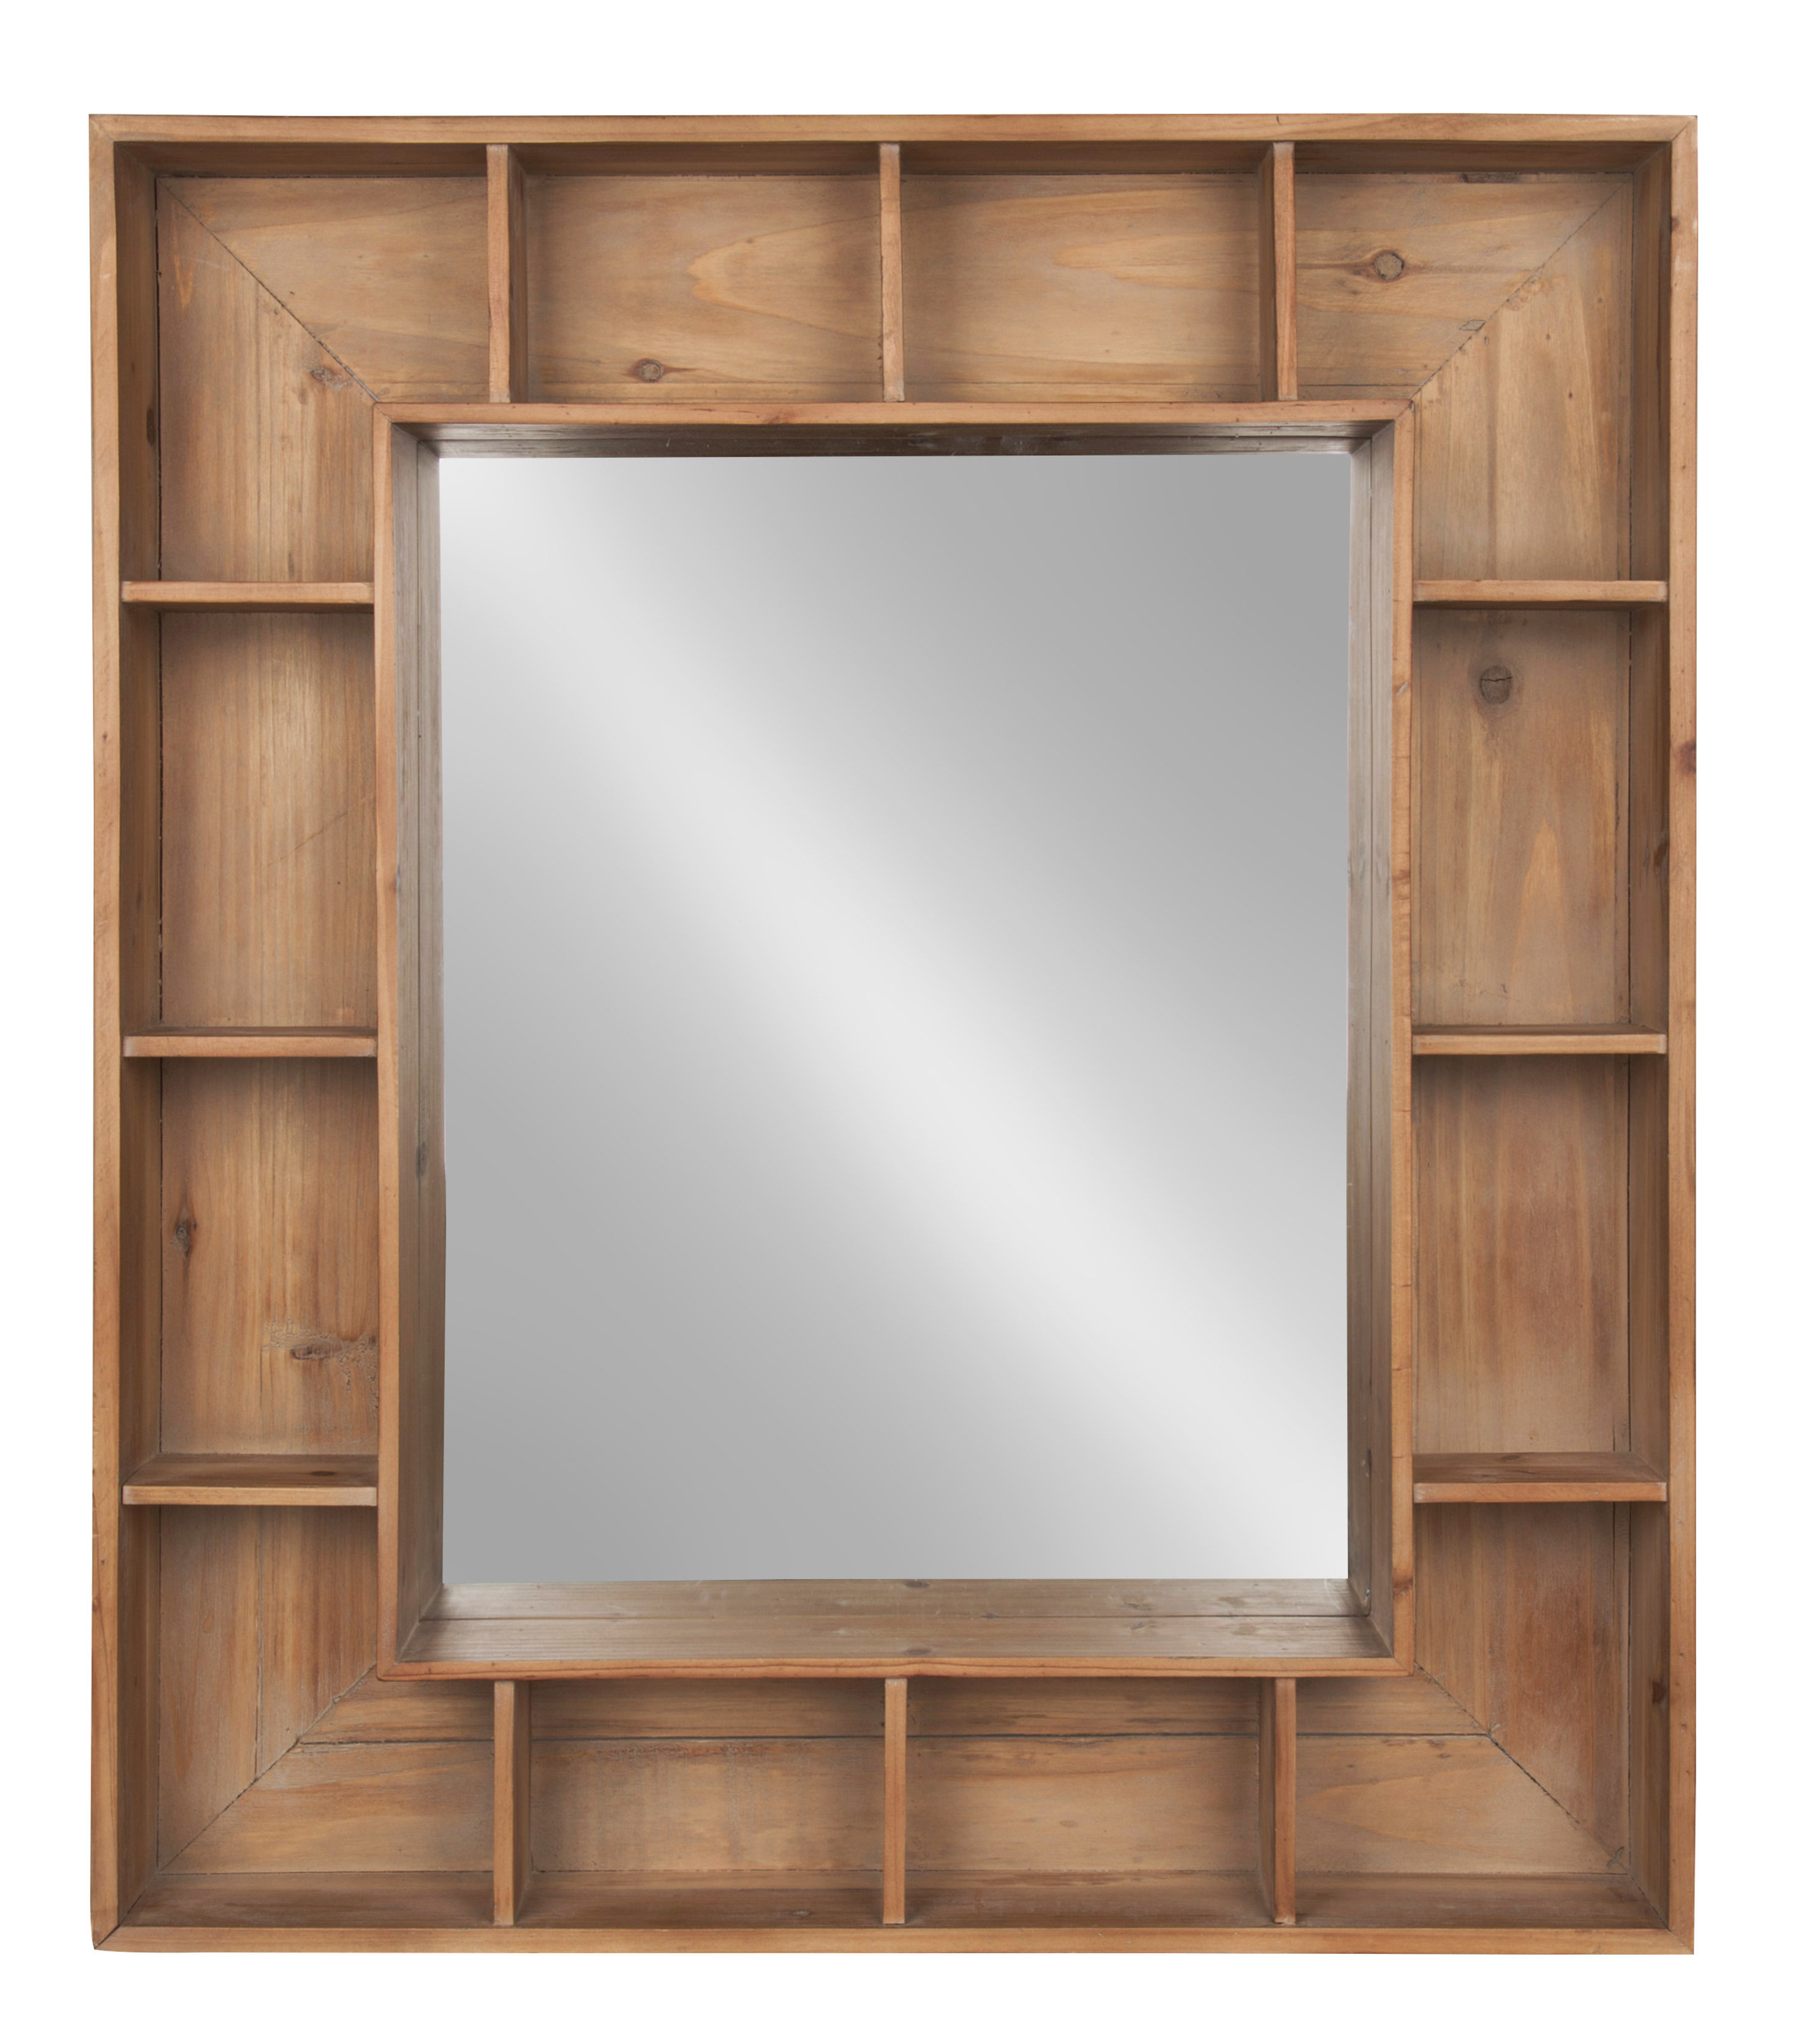 Gretel Rustic Wood Cubby Framed Wall Storage Accent Mirror With Well Liked Framed Wall Mirrors (View 12 of 20)